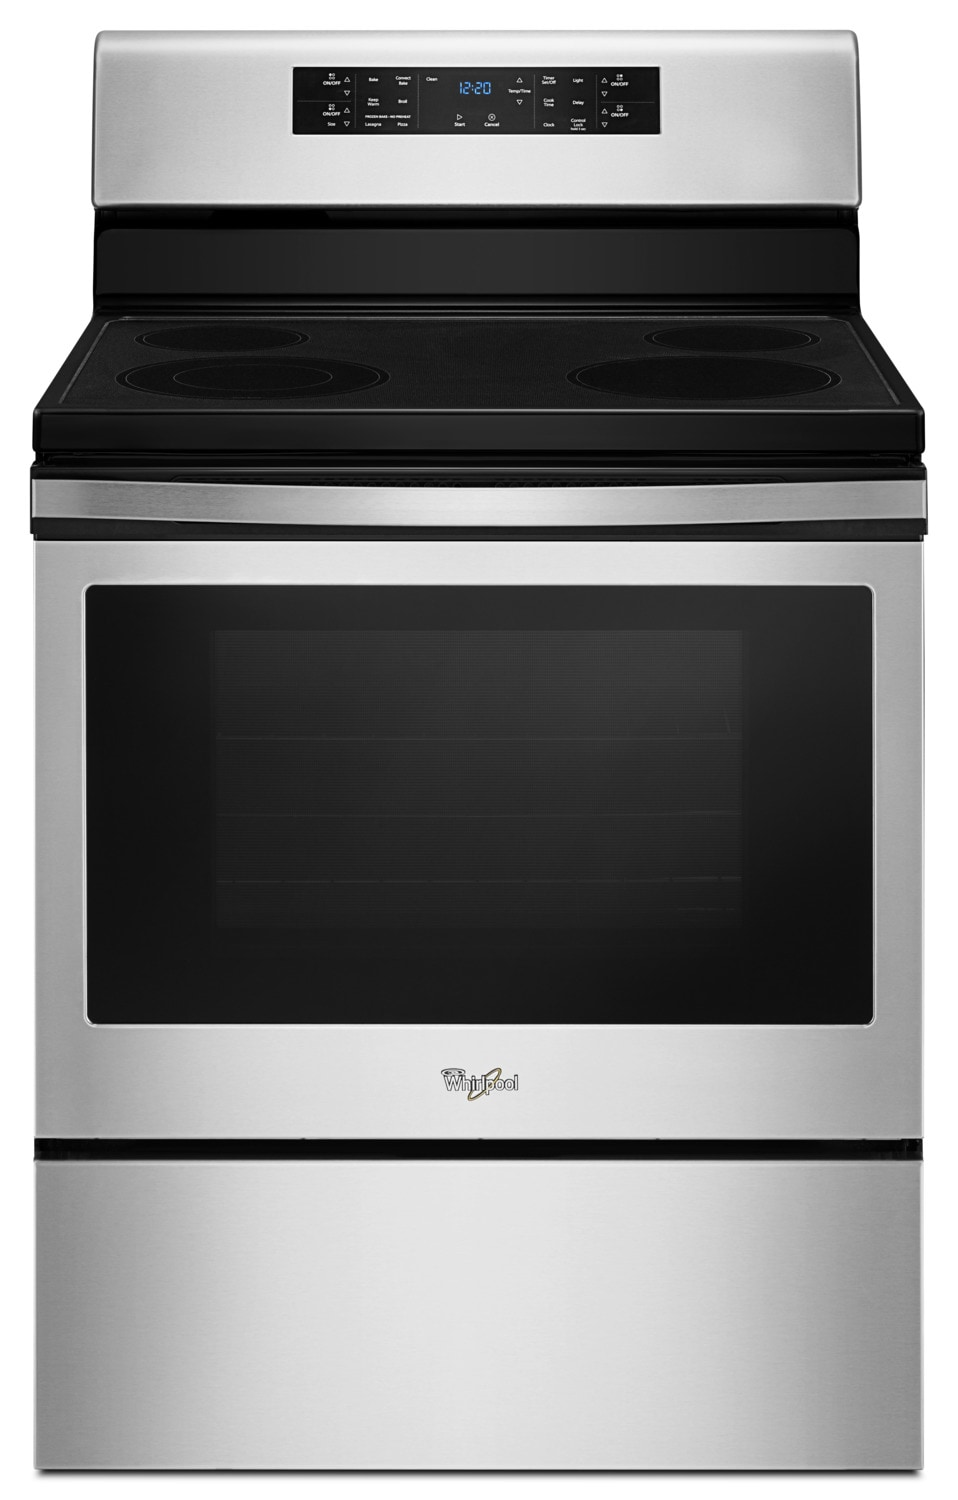 Whirlpool® 5.3 Cu. Ft. Guided Electric Front Control Range with Fan Convection Cooking